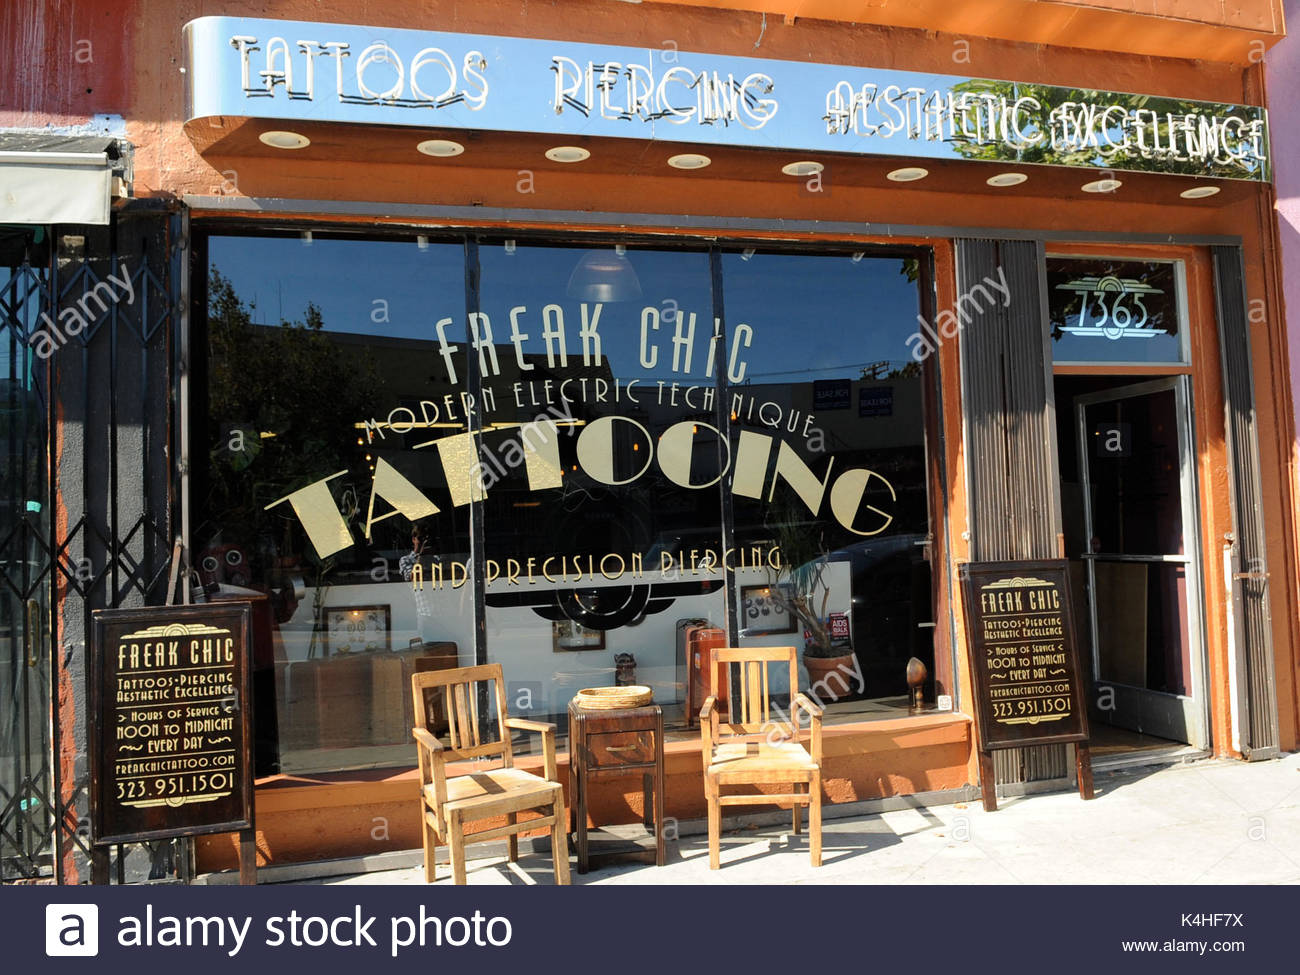 Ear piercing stock photos ear piercing stock images alamy for The parlour tattoo